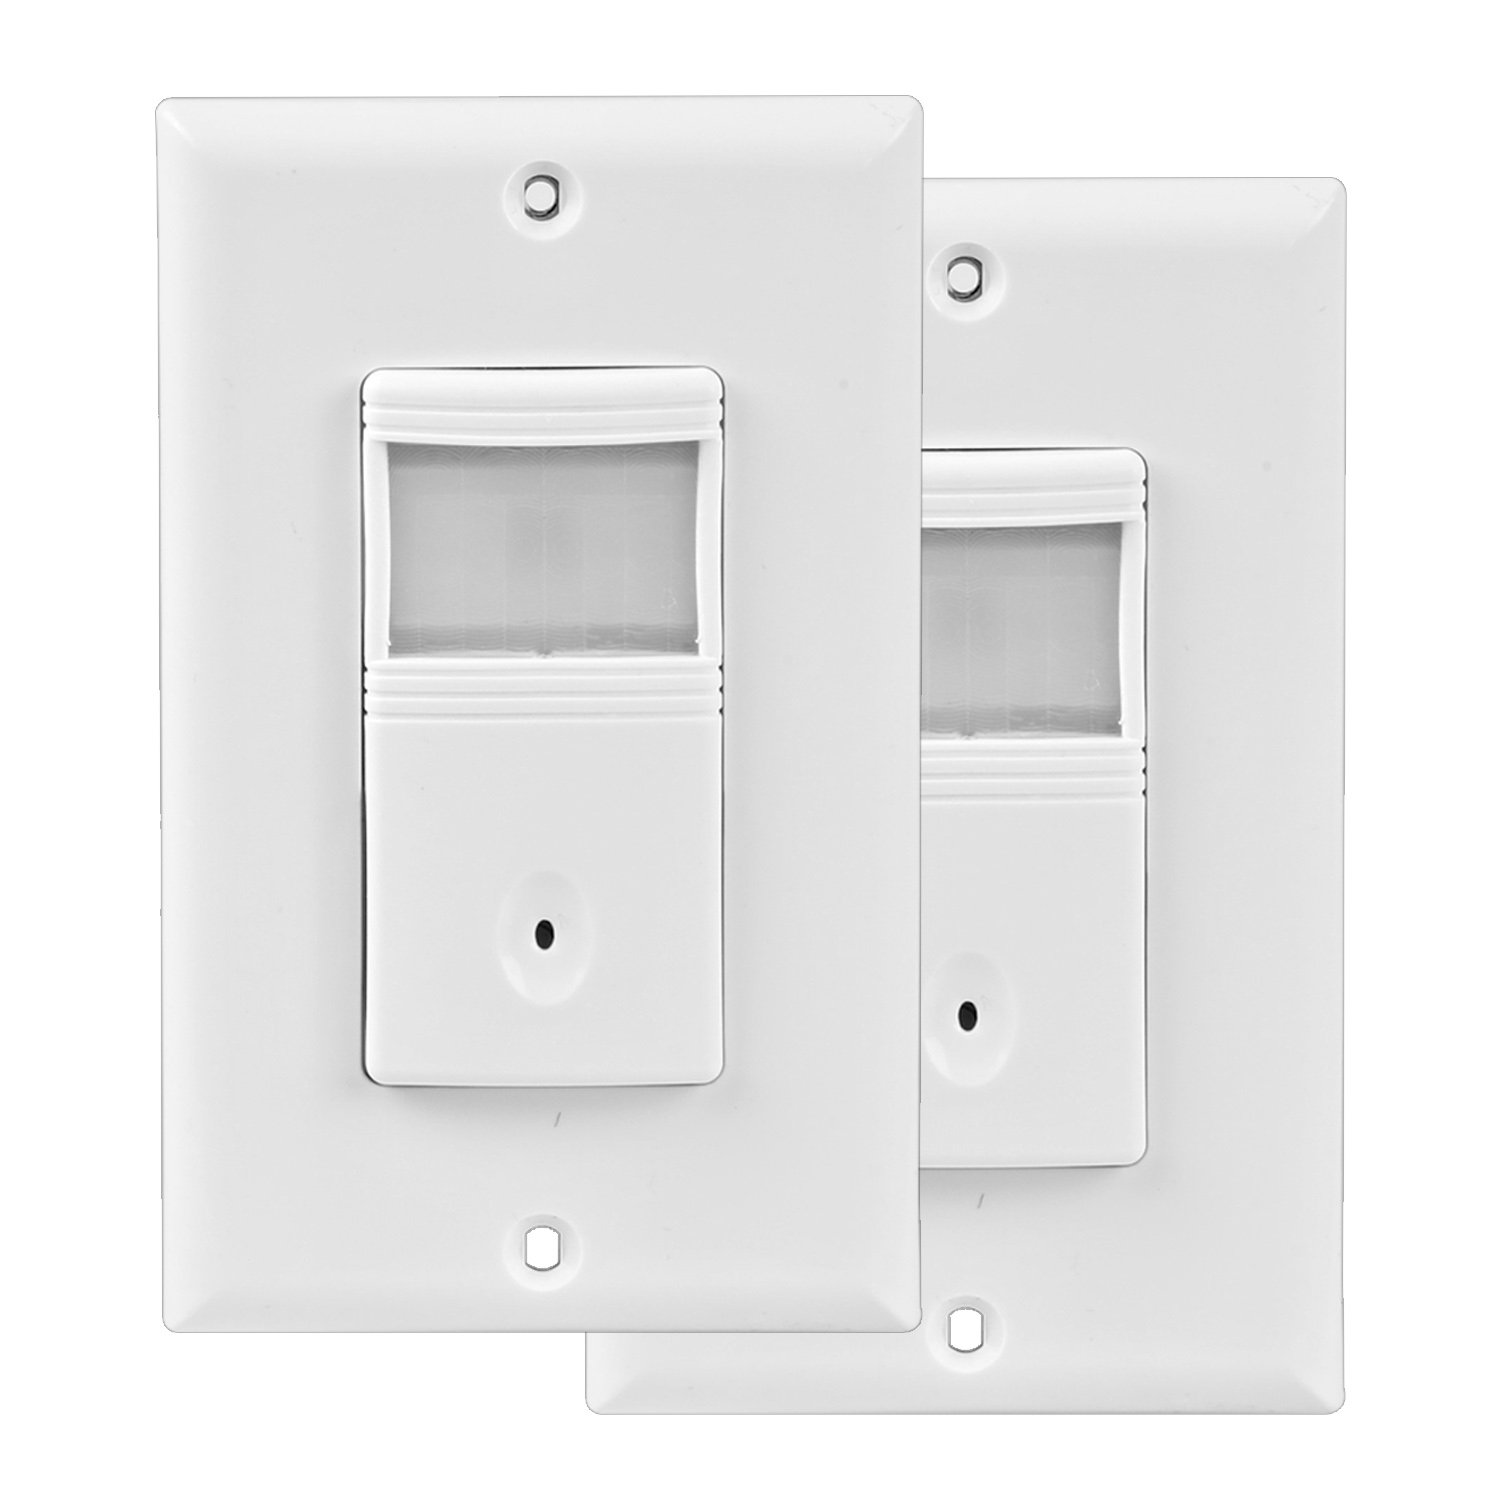 Hykolity Vacancy & Occupancy PIR motion sensor wall switch,Neutral Wire required, Single-Pole,Automatic and Manual ON/OFF for lights、Corridor and Staircase-2 Pack